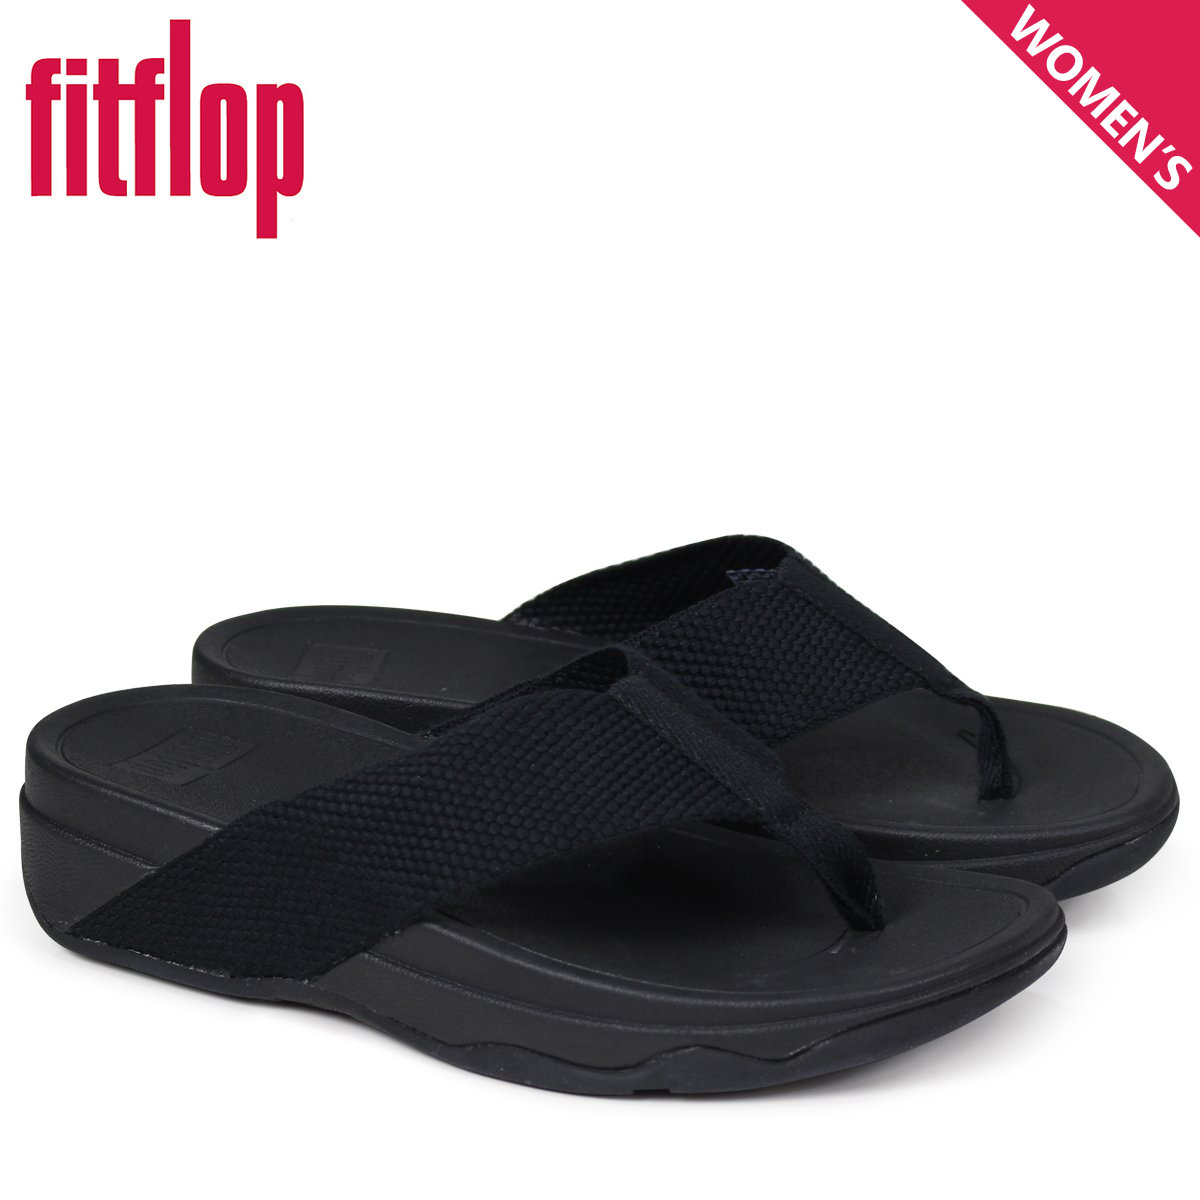 2d31ae3c390c FitFlop fitting FLOP surfer sandals Lady s SURFA TOE POST SANDALS black H84